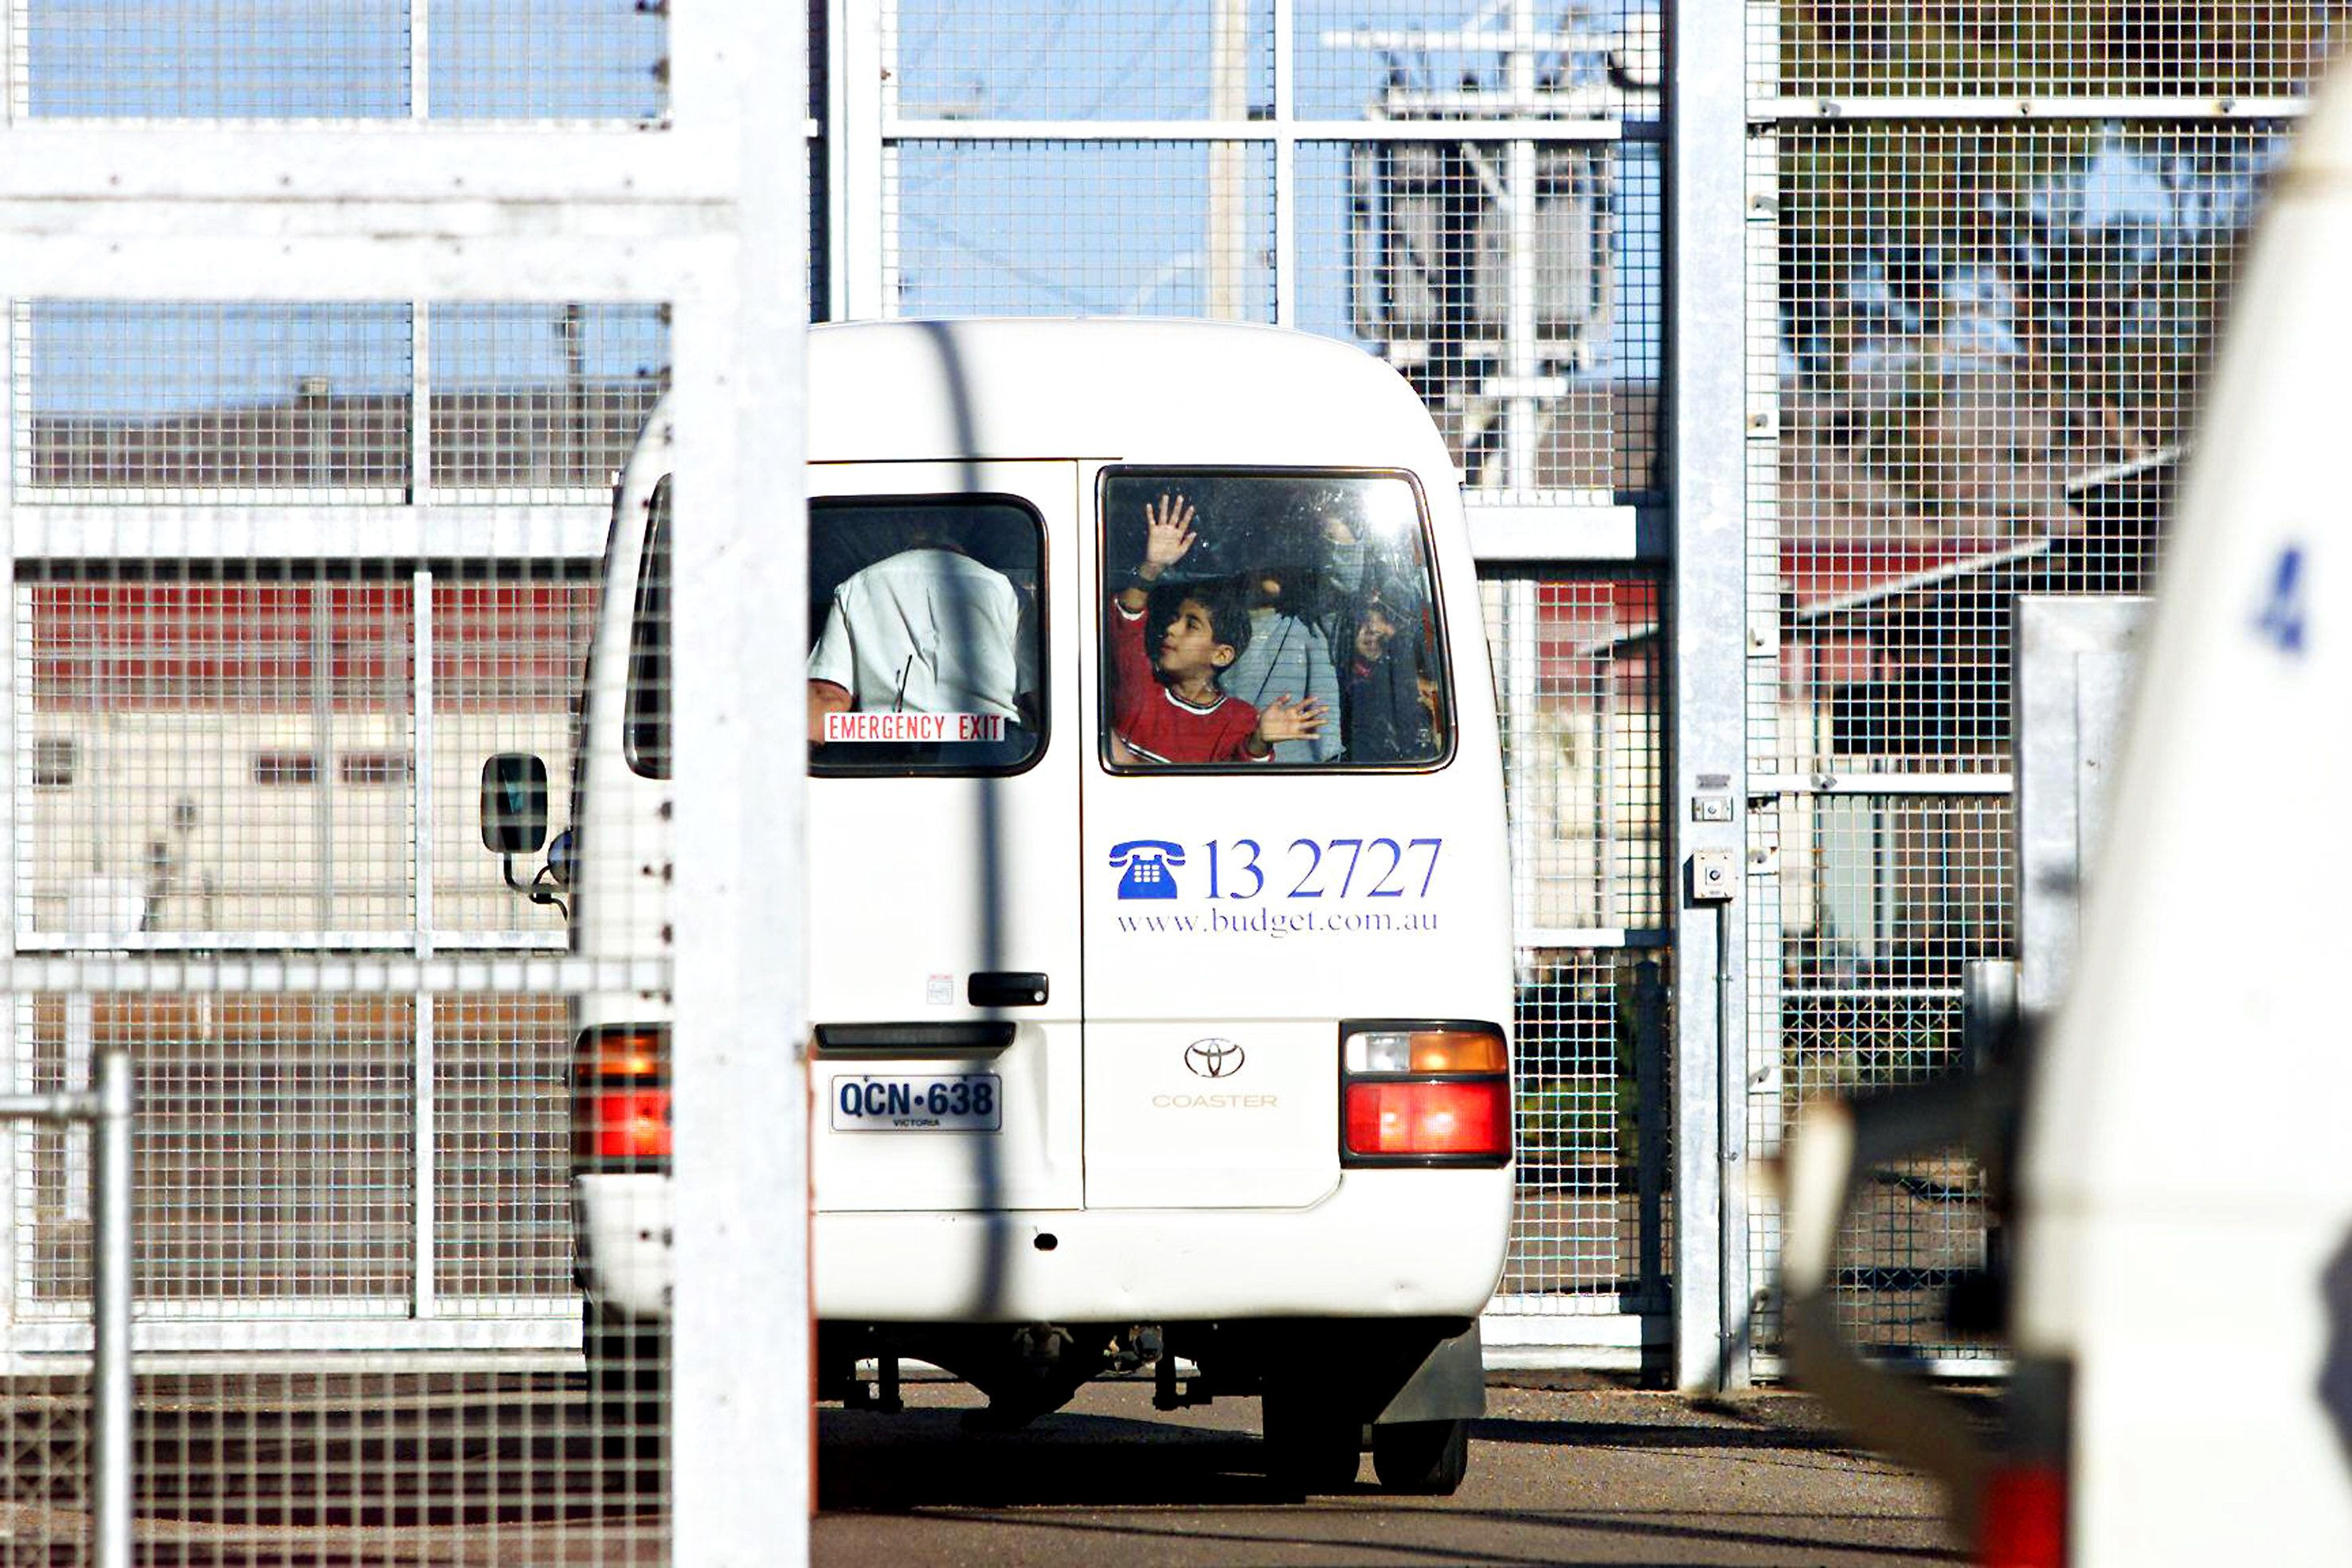 (AUSTRALIA OUT) The Big Picture. After school, a bus carries asylum-seeker children back behind the wire of the Baxter detention centre in 2003. Children sewed their mouths shut, drank shampoo, cut themselves with razors and threatened suicide in protest against their detention. The Federal Government decided to release children from detention in 2005 after lobbying from its back bench, 1 August 2003. AFR Picture by BRYAN CHARLTON (Photo by Fairfax Media via Getty Images)